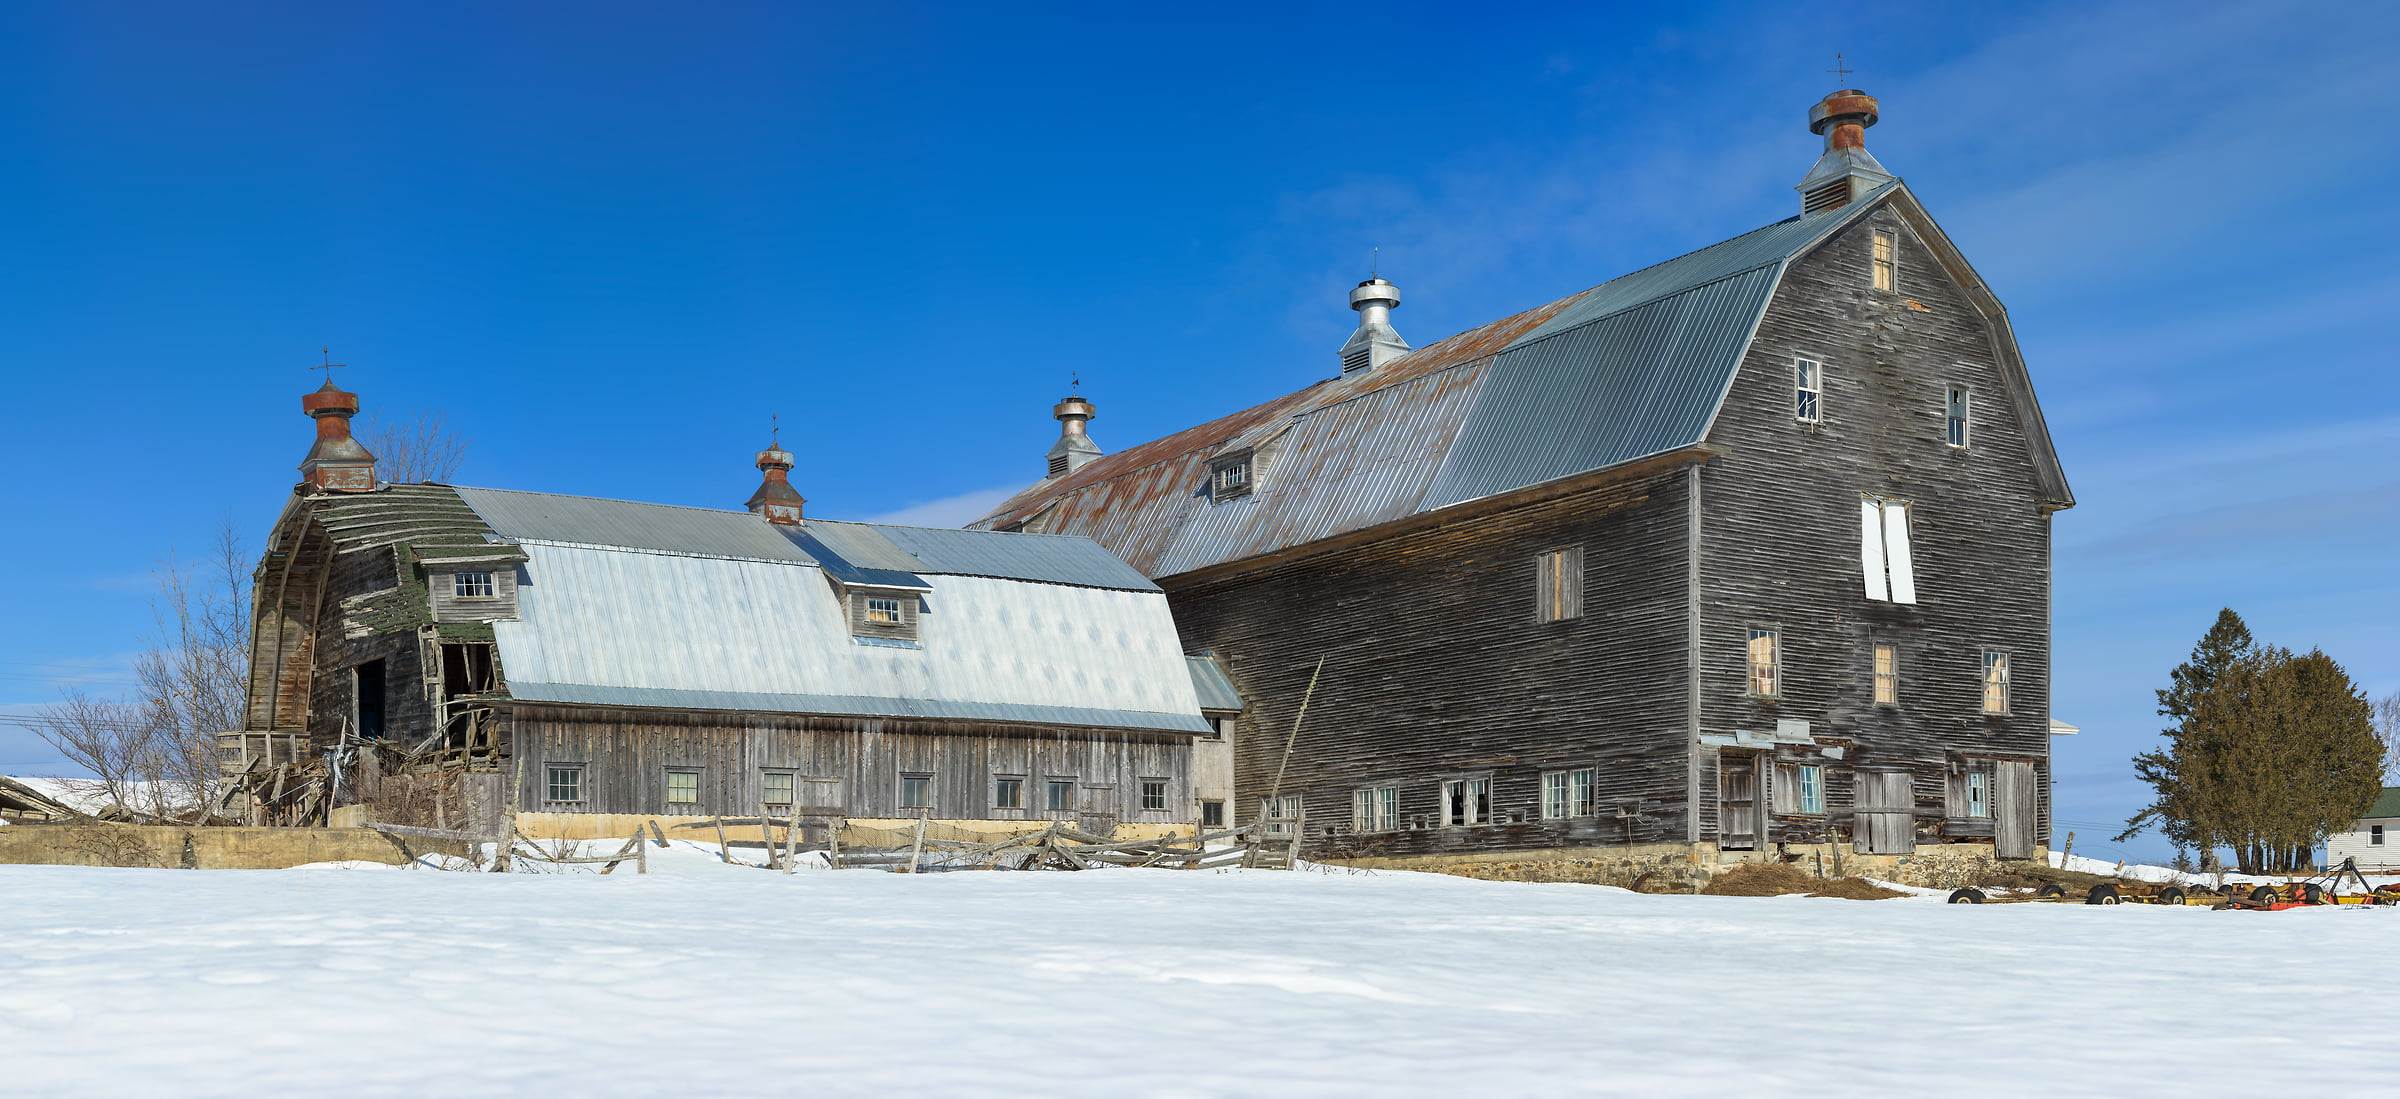 1,012 megapixels! A very high resolution, large-format VAST photo of a farm house in snow in winter in New England; fine art landscape photograph created by Aaron Priest in Stacyville, Maine